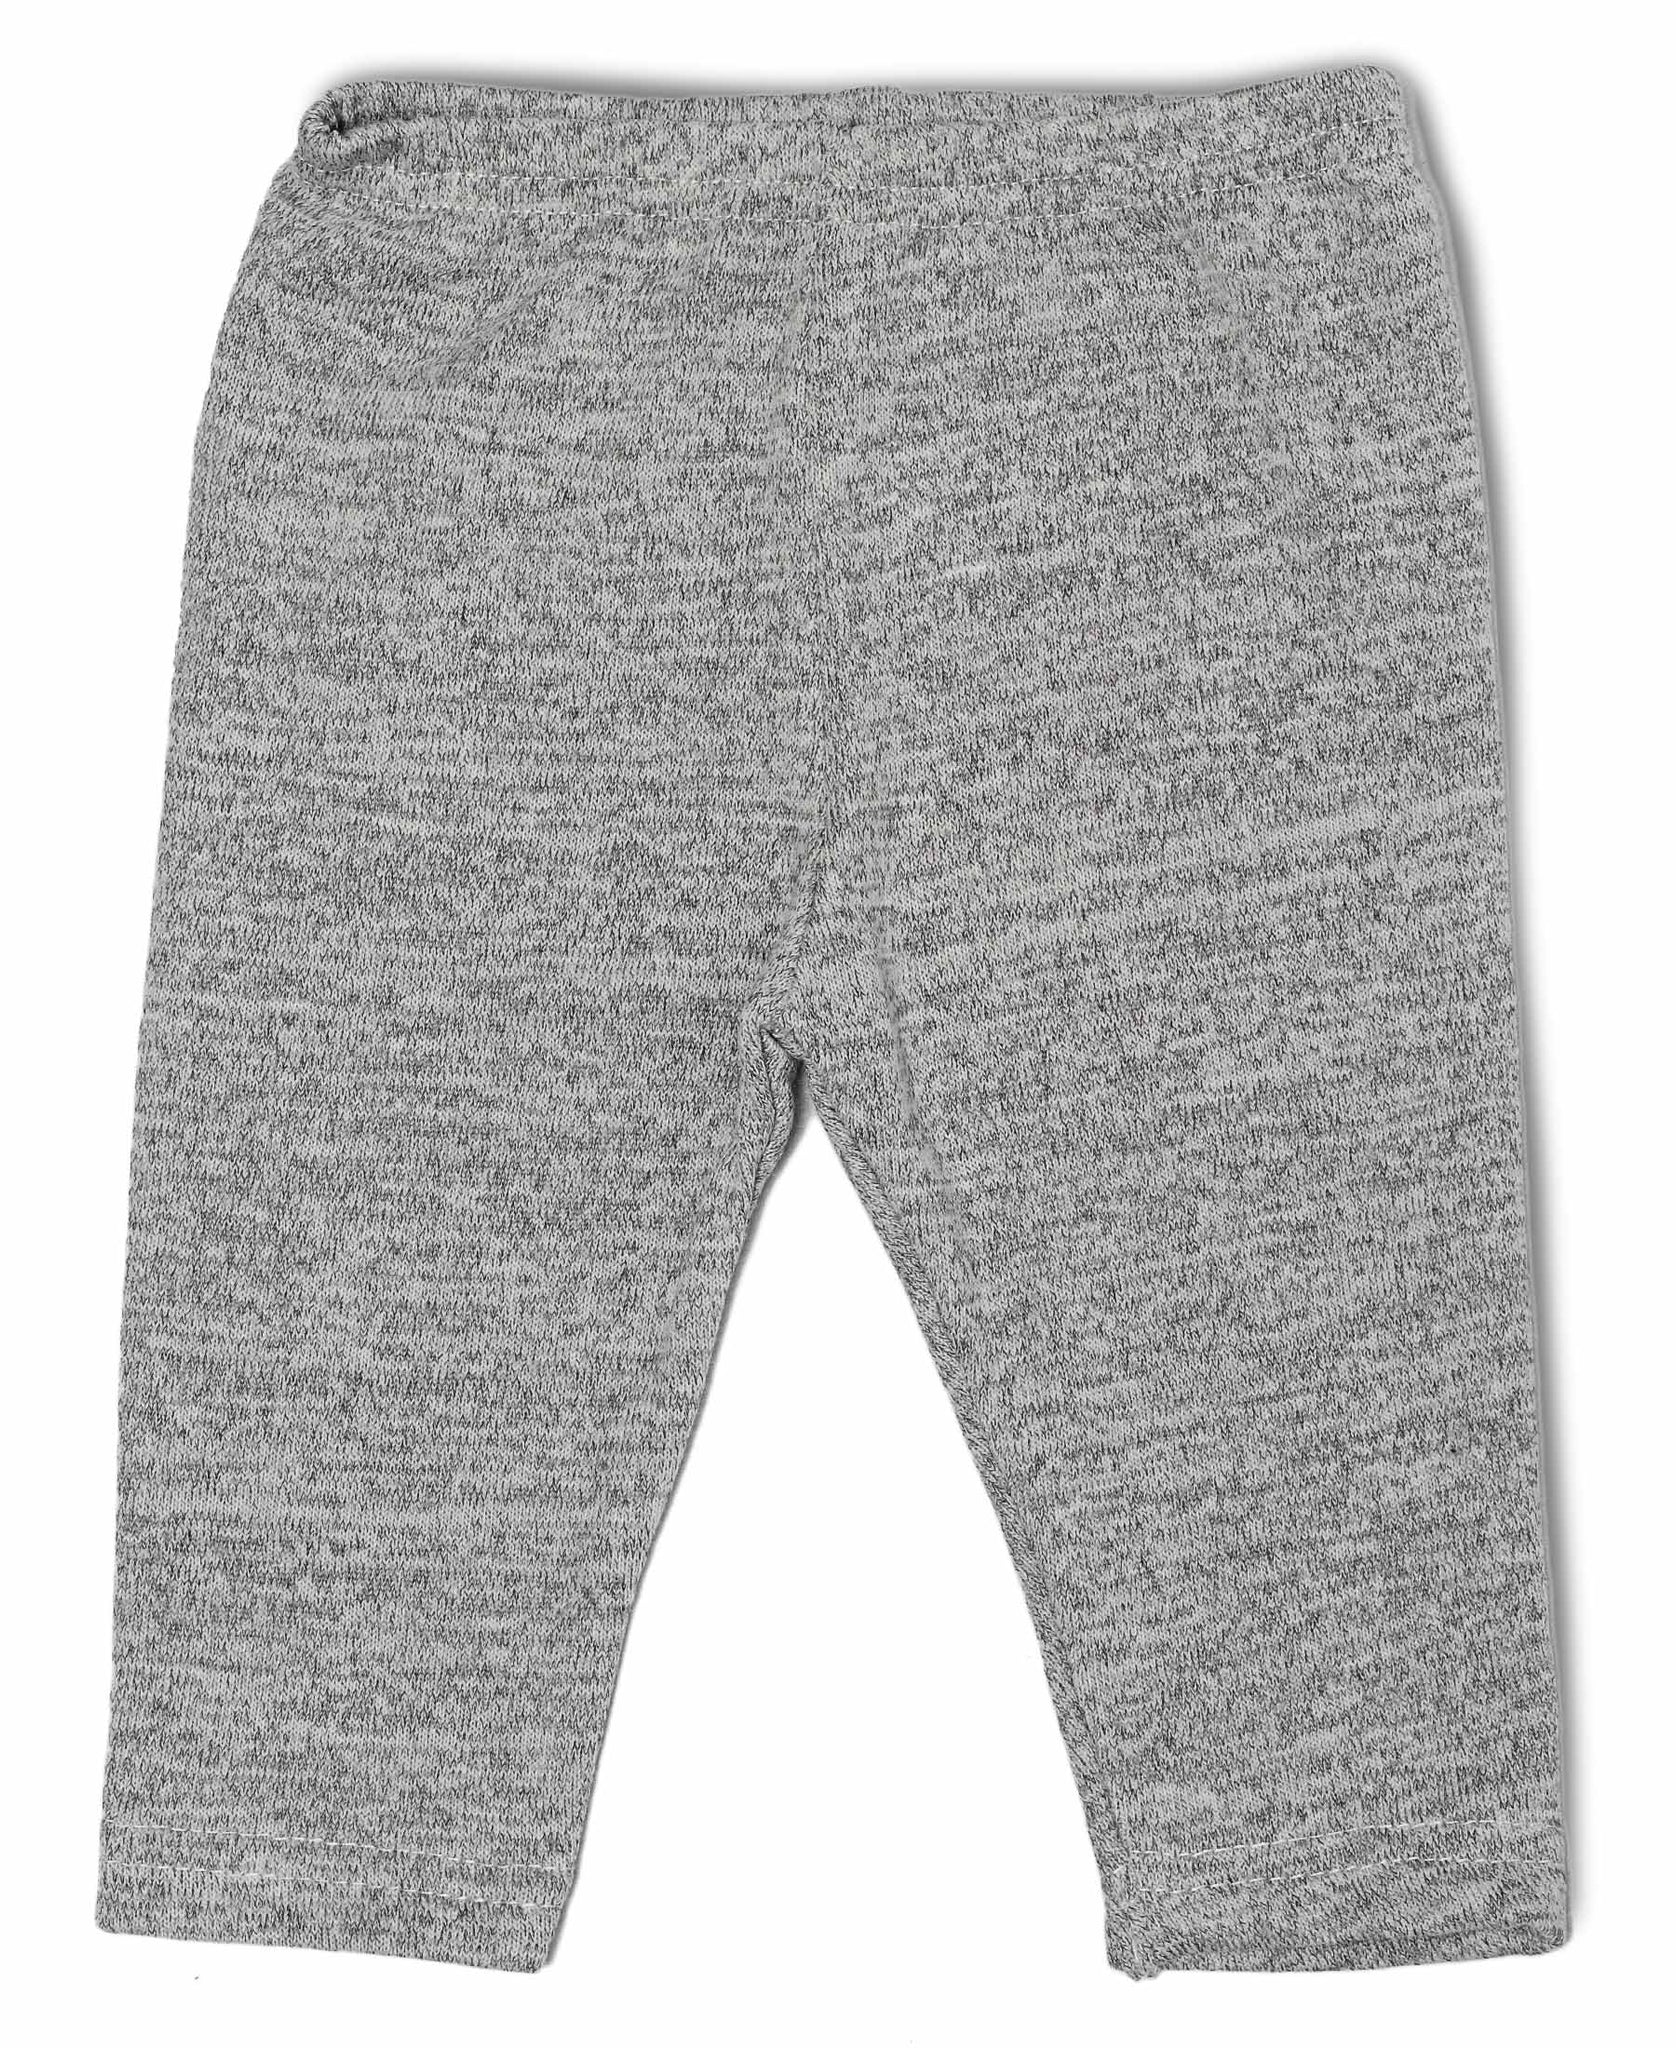 Infants Leggings - Grey